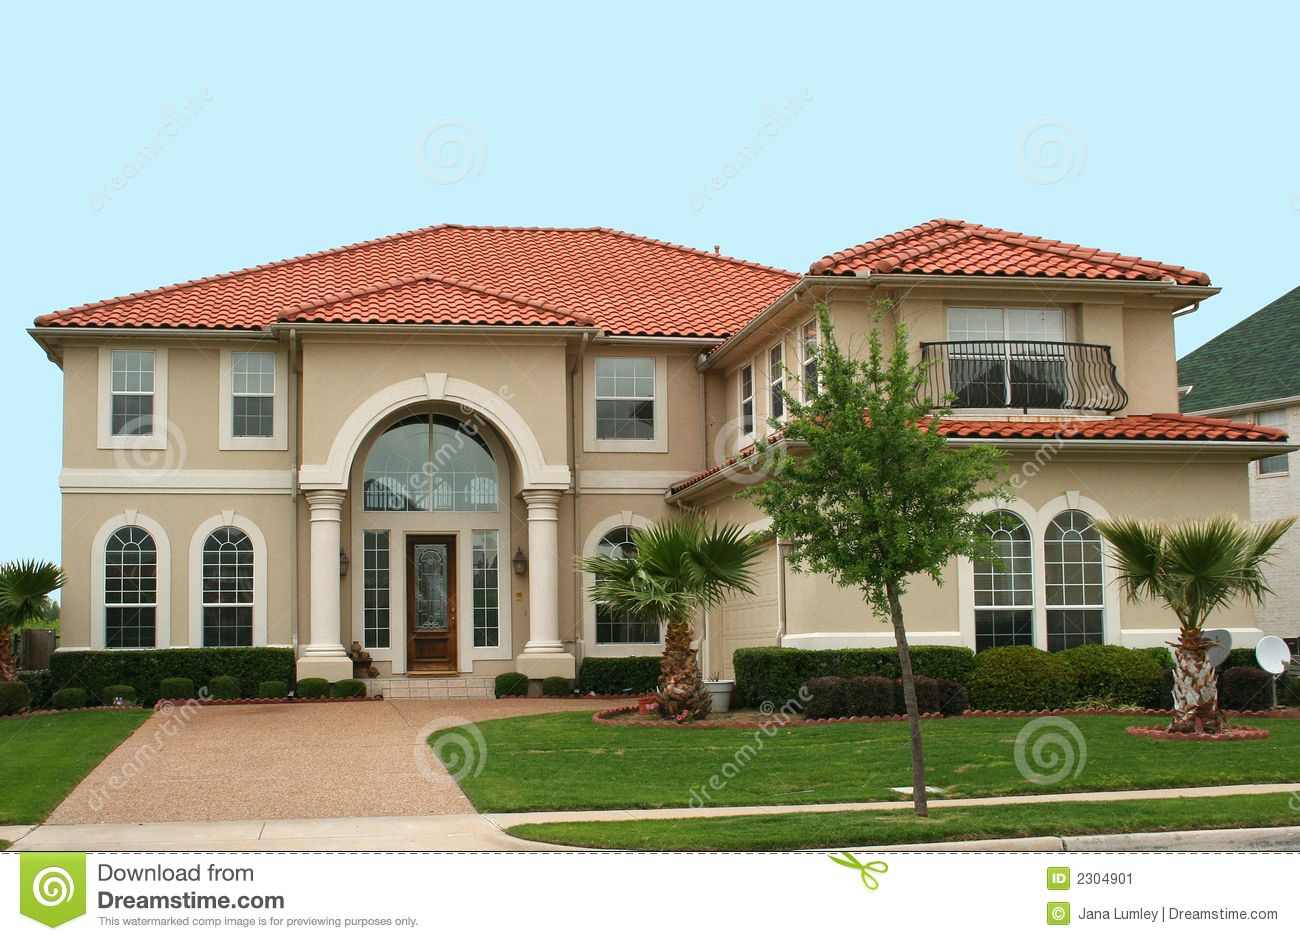 Small mediterranean house plans awesome mediterranean style home mediterranean home design - Home exterior paints concept ...